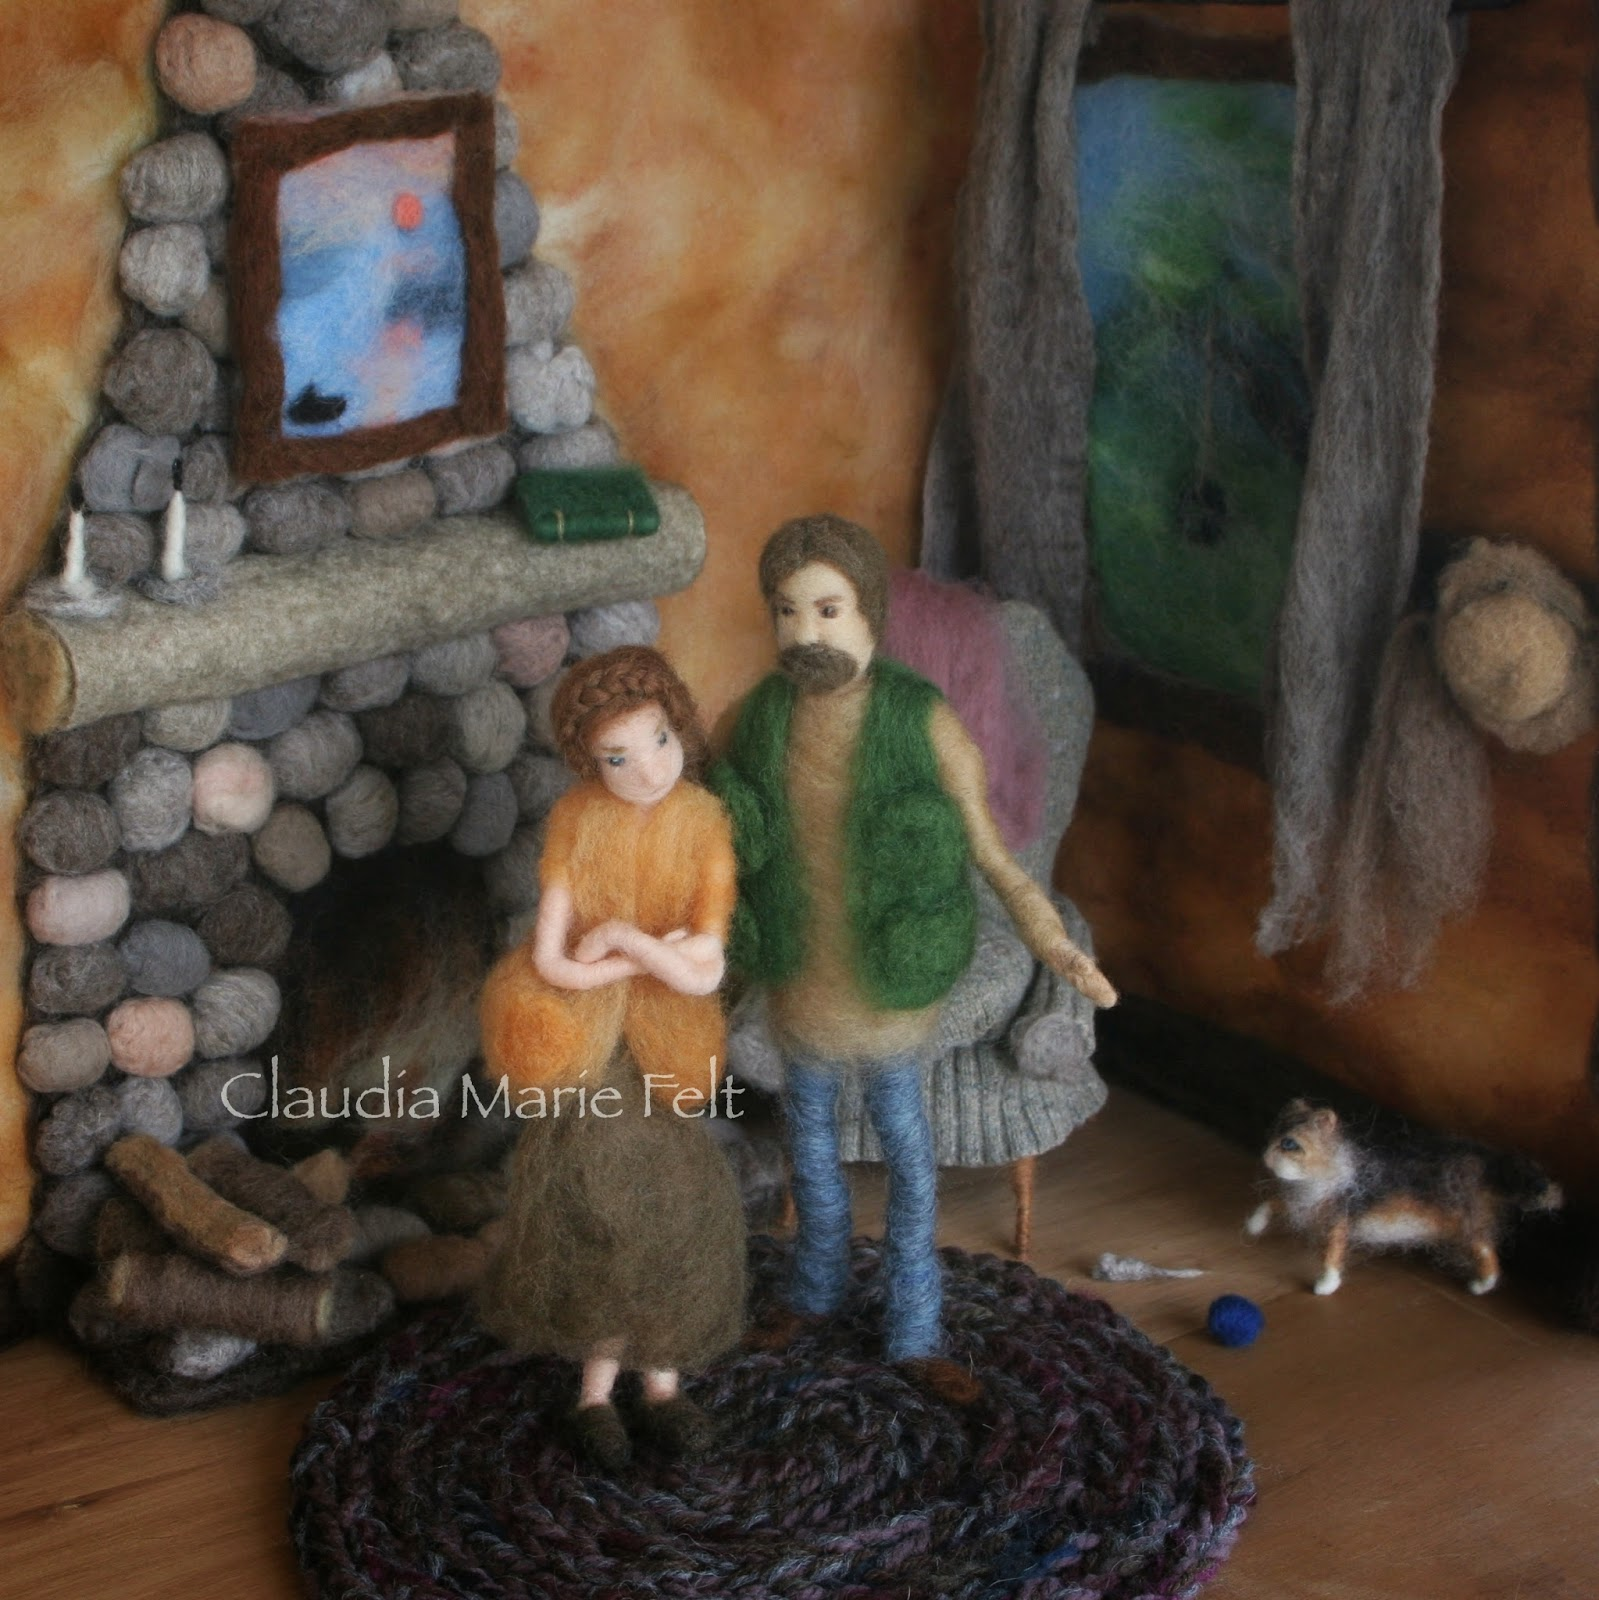 Hansel & Gretel fairy tale illustrated in fiber art